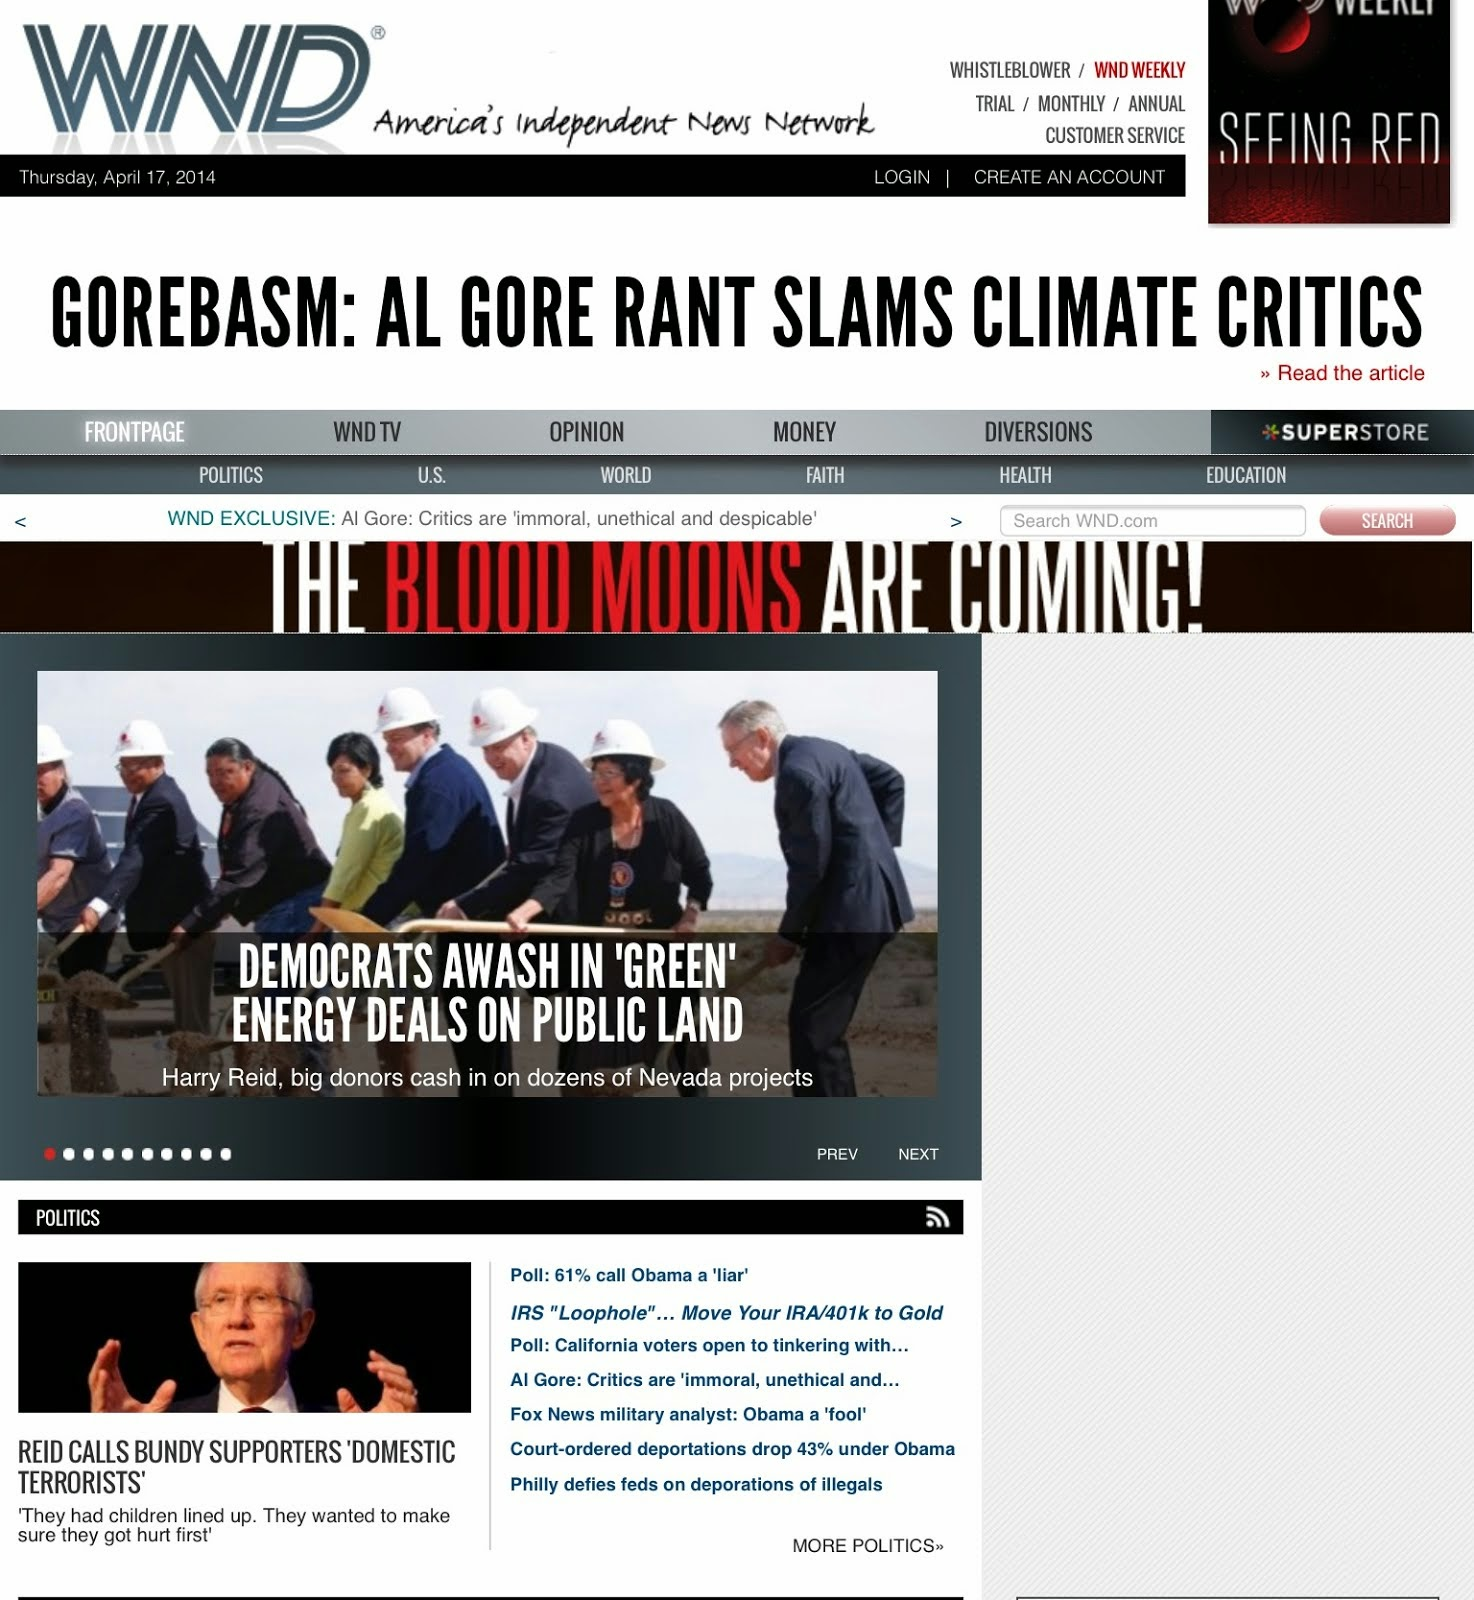 April 18, 2014: G.C.F. Cited in WND EXCLUSIVE by  Jerome Corsi